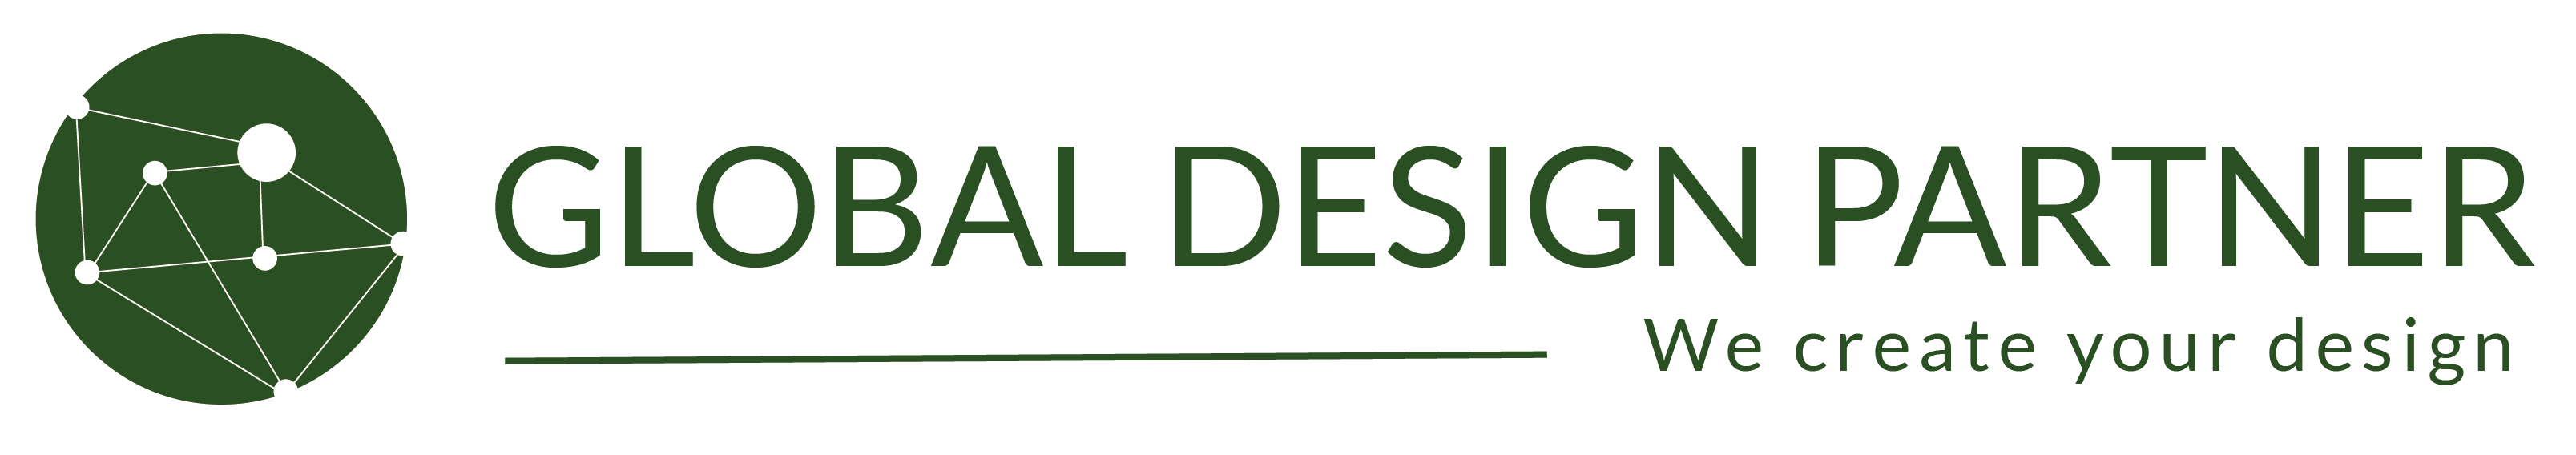 GLOBAL DESIGN PARTNER